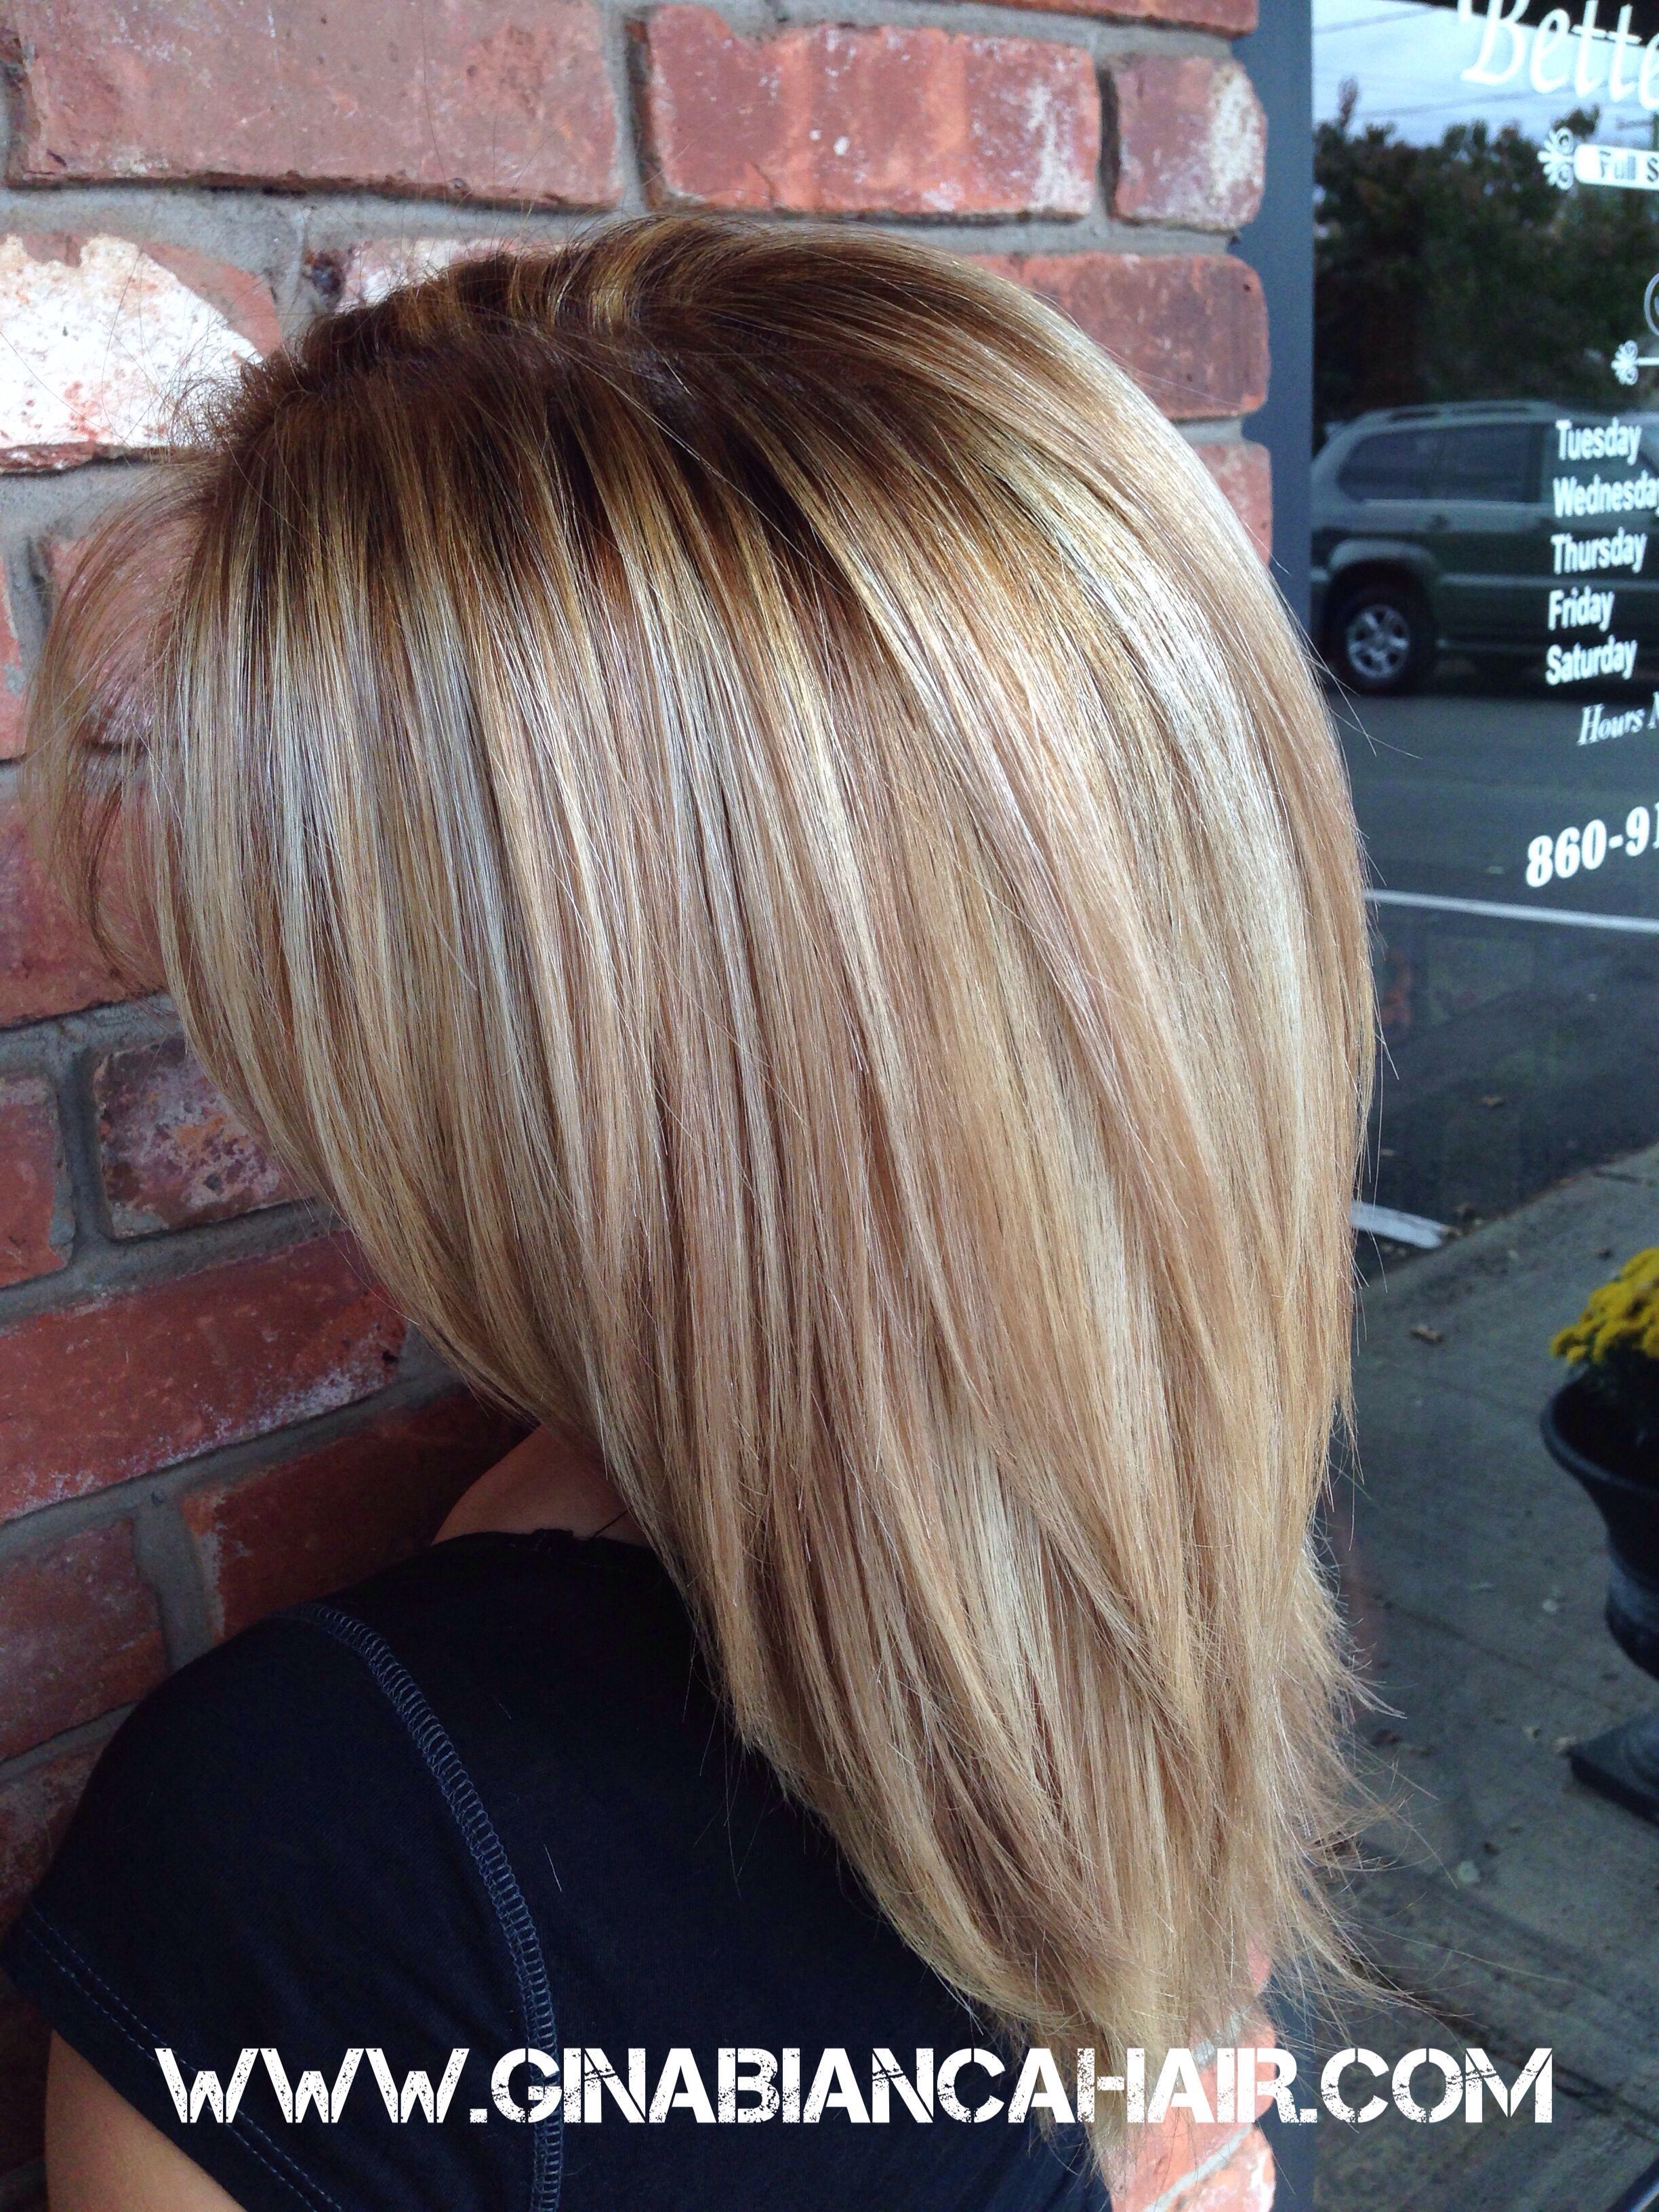 Highlights And Lowlights For Fall Www Ginabiancahair Com Hair Styles Hair Highlights Medium Hair Styles